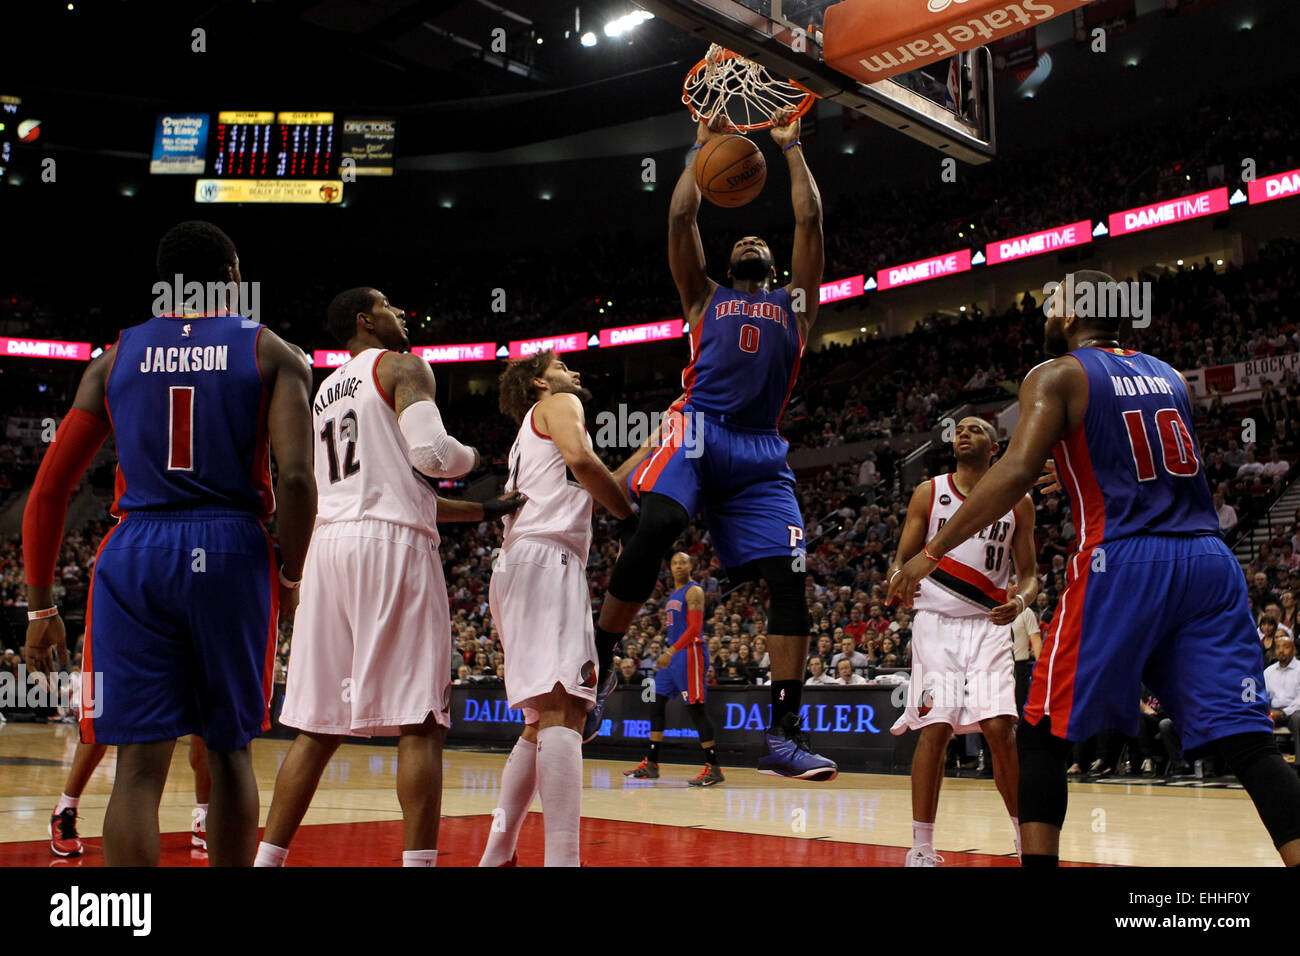 March 13, 2015 - ANDRE DRUMMOND (0) dunks the ball. The Portland Trail Blazers play the Detroit Pistons at the Moda Stock Photo